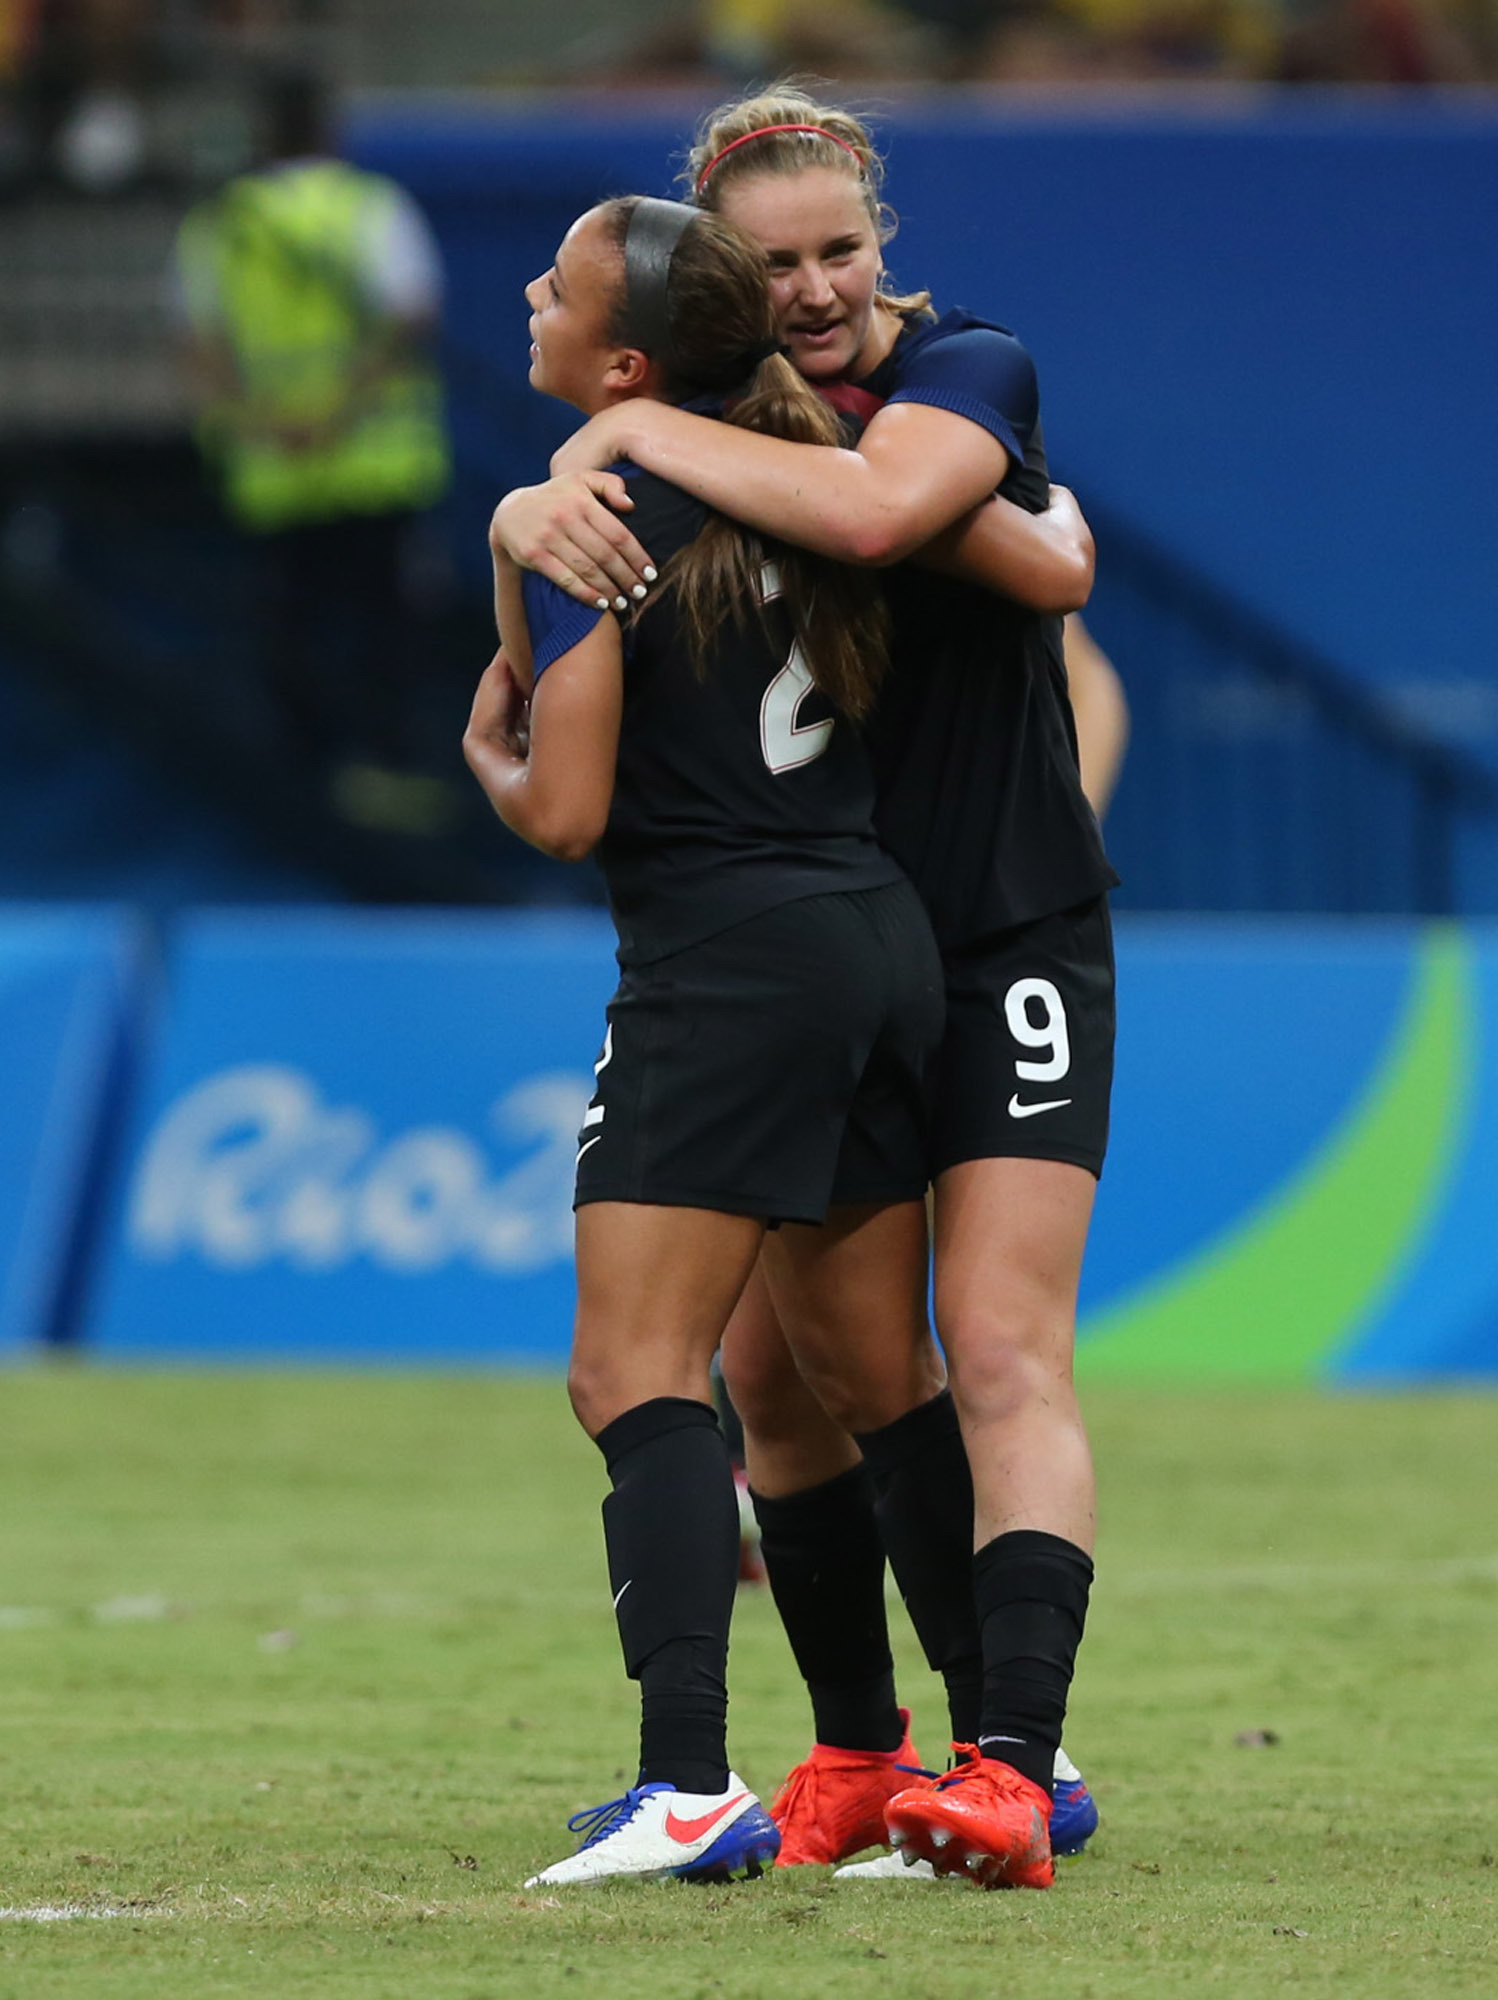 United States' Mallory Pugh, left, is congratulated after scoring her side's 2nd goal by teammate Lindsey Horan during a group G match of the women's Olympic football tournament between Colombia and United States at the Arena Amazonia stadium in Manaus, B